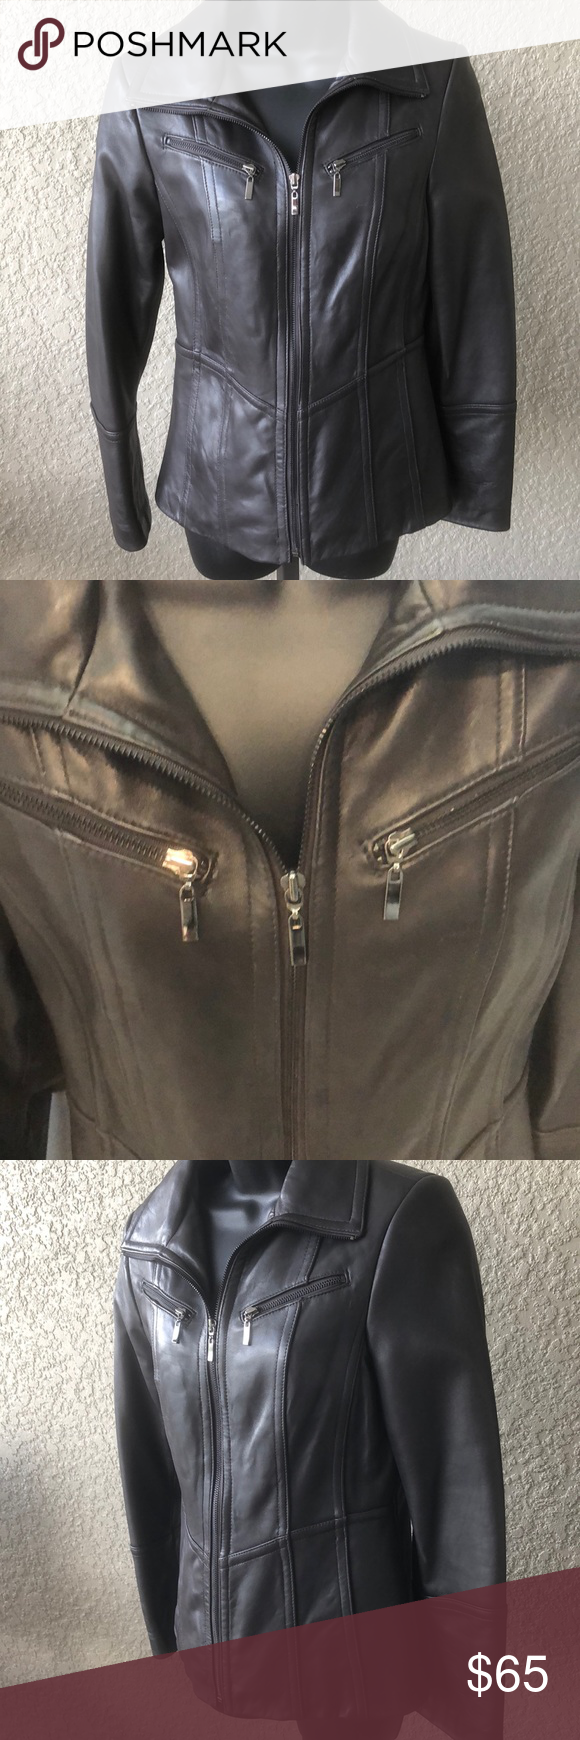 Bromley Chocolate Brown Leather Jacket Brown Leather Jacket Leather Jacket Jackets [ 1740 x 580 Pixel ]